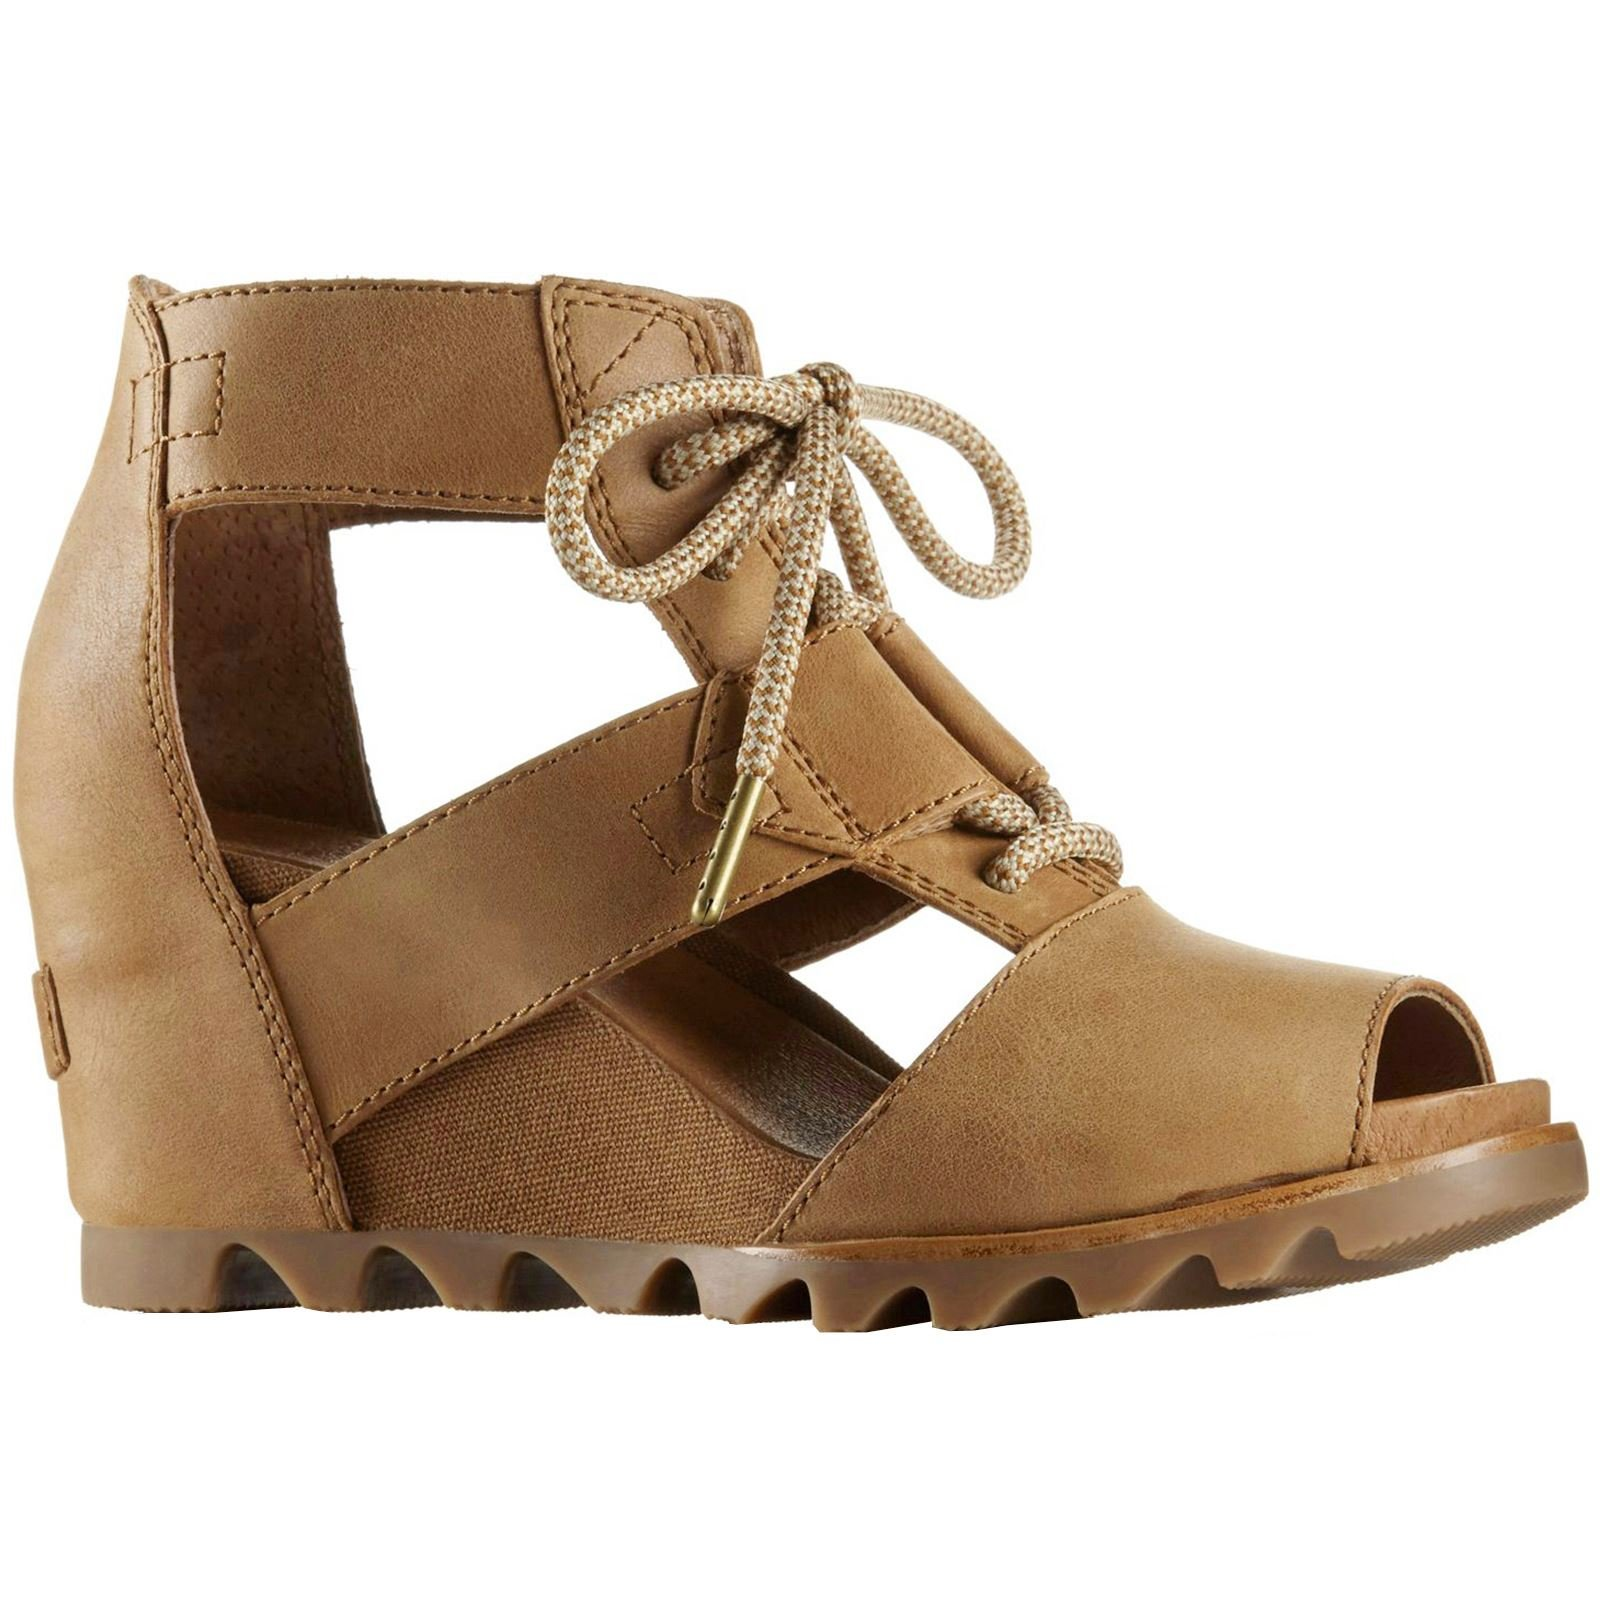 SOREL Women's Joanie Lace Sandals, Camel Brown, 9 B(M) US